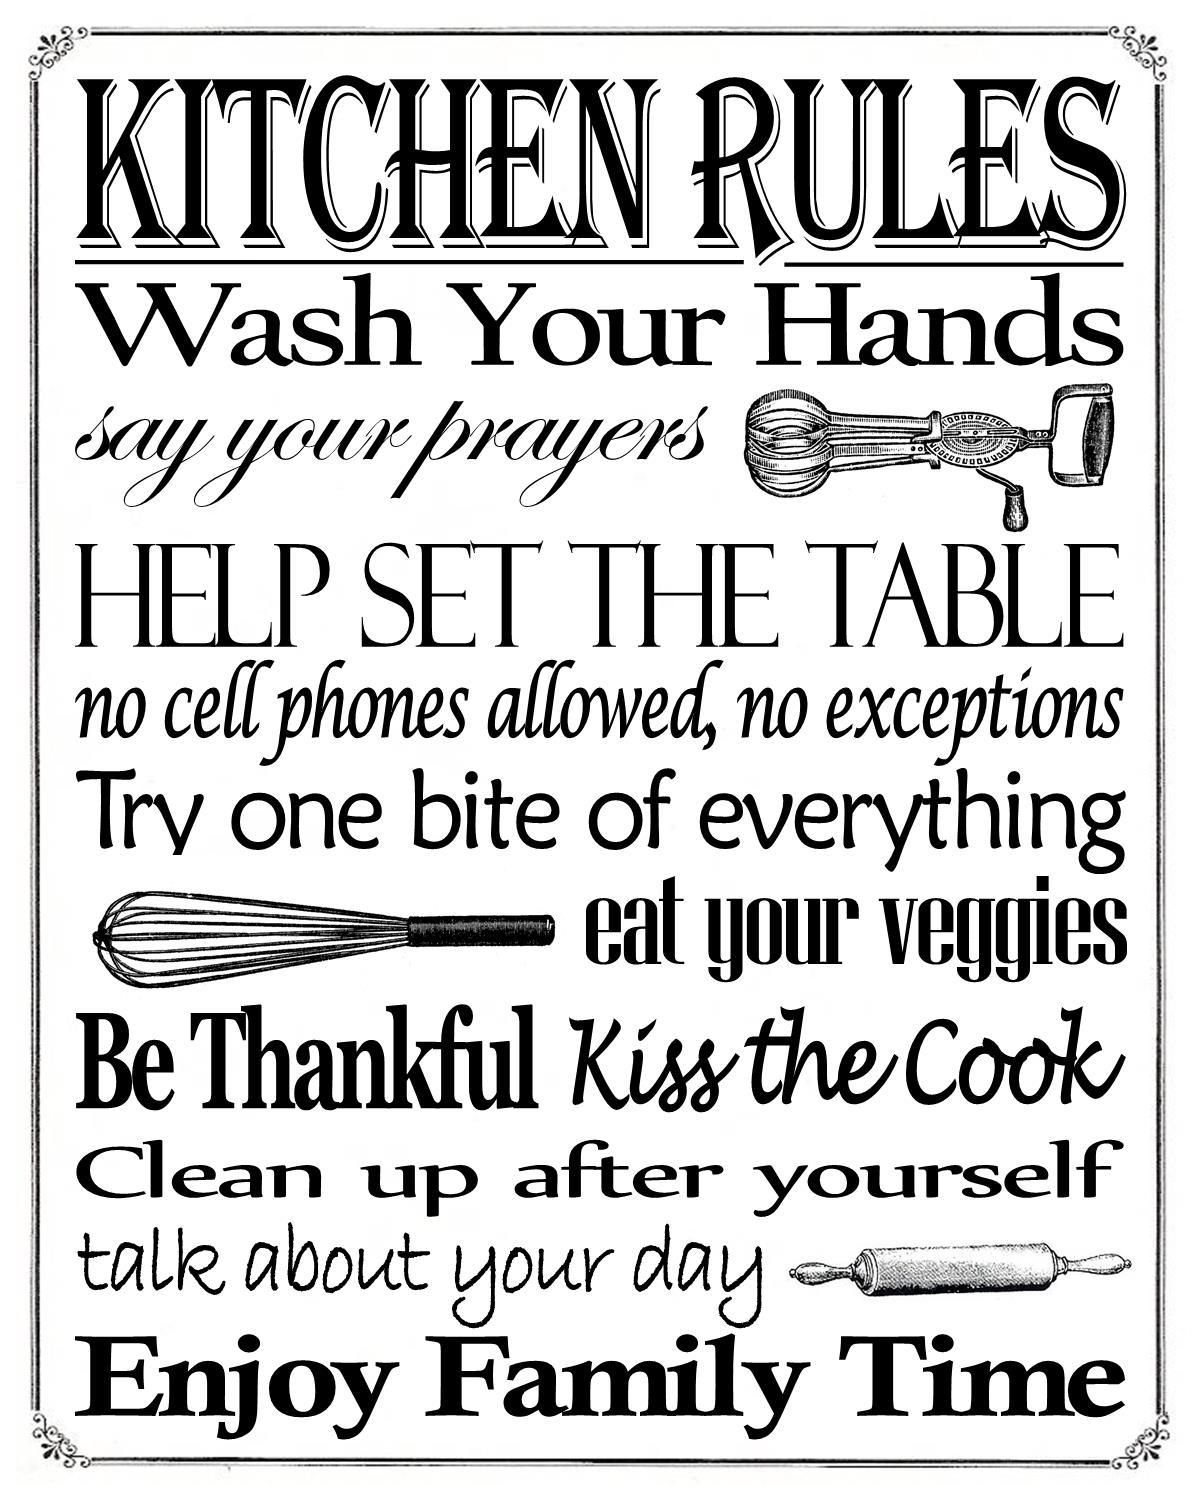 """Free Printable """"kitchen Rules"""" 8"""" X 10"""" Sign   Misc In 2019 - Free Printable Do Not Flush Signs"""